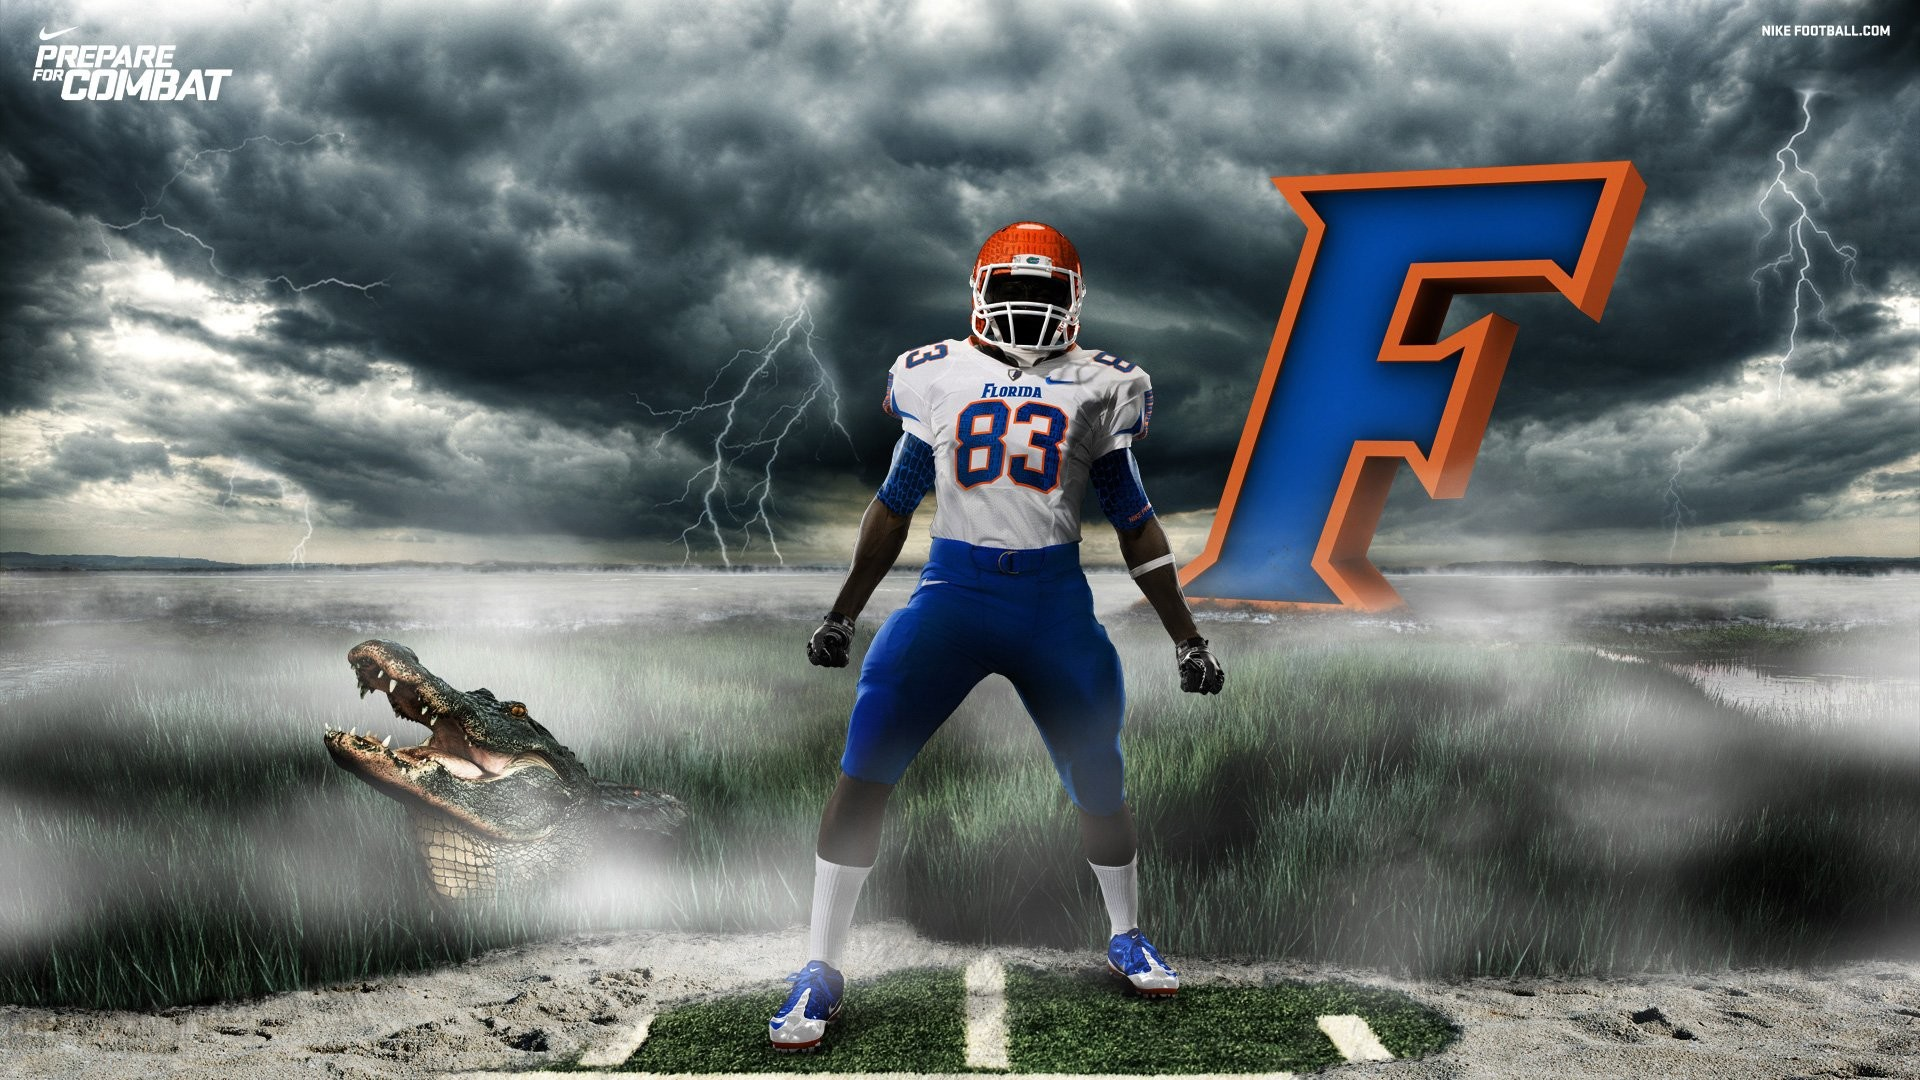 1920x1080 Search Results For Florida Gators Wallpaper The Swamp Adorable Wallpapers